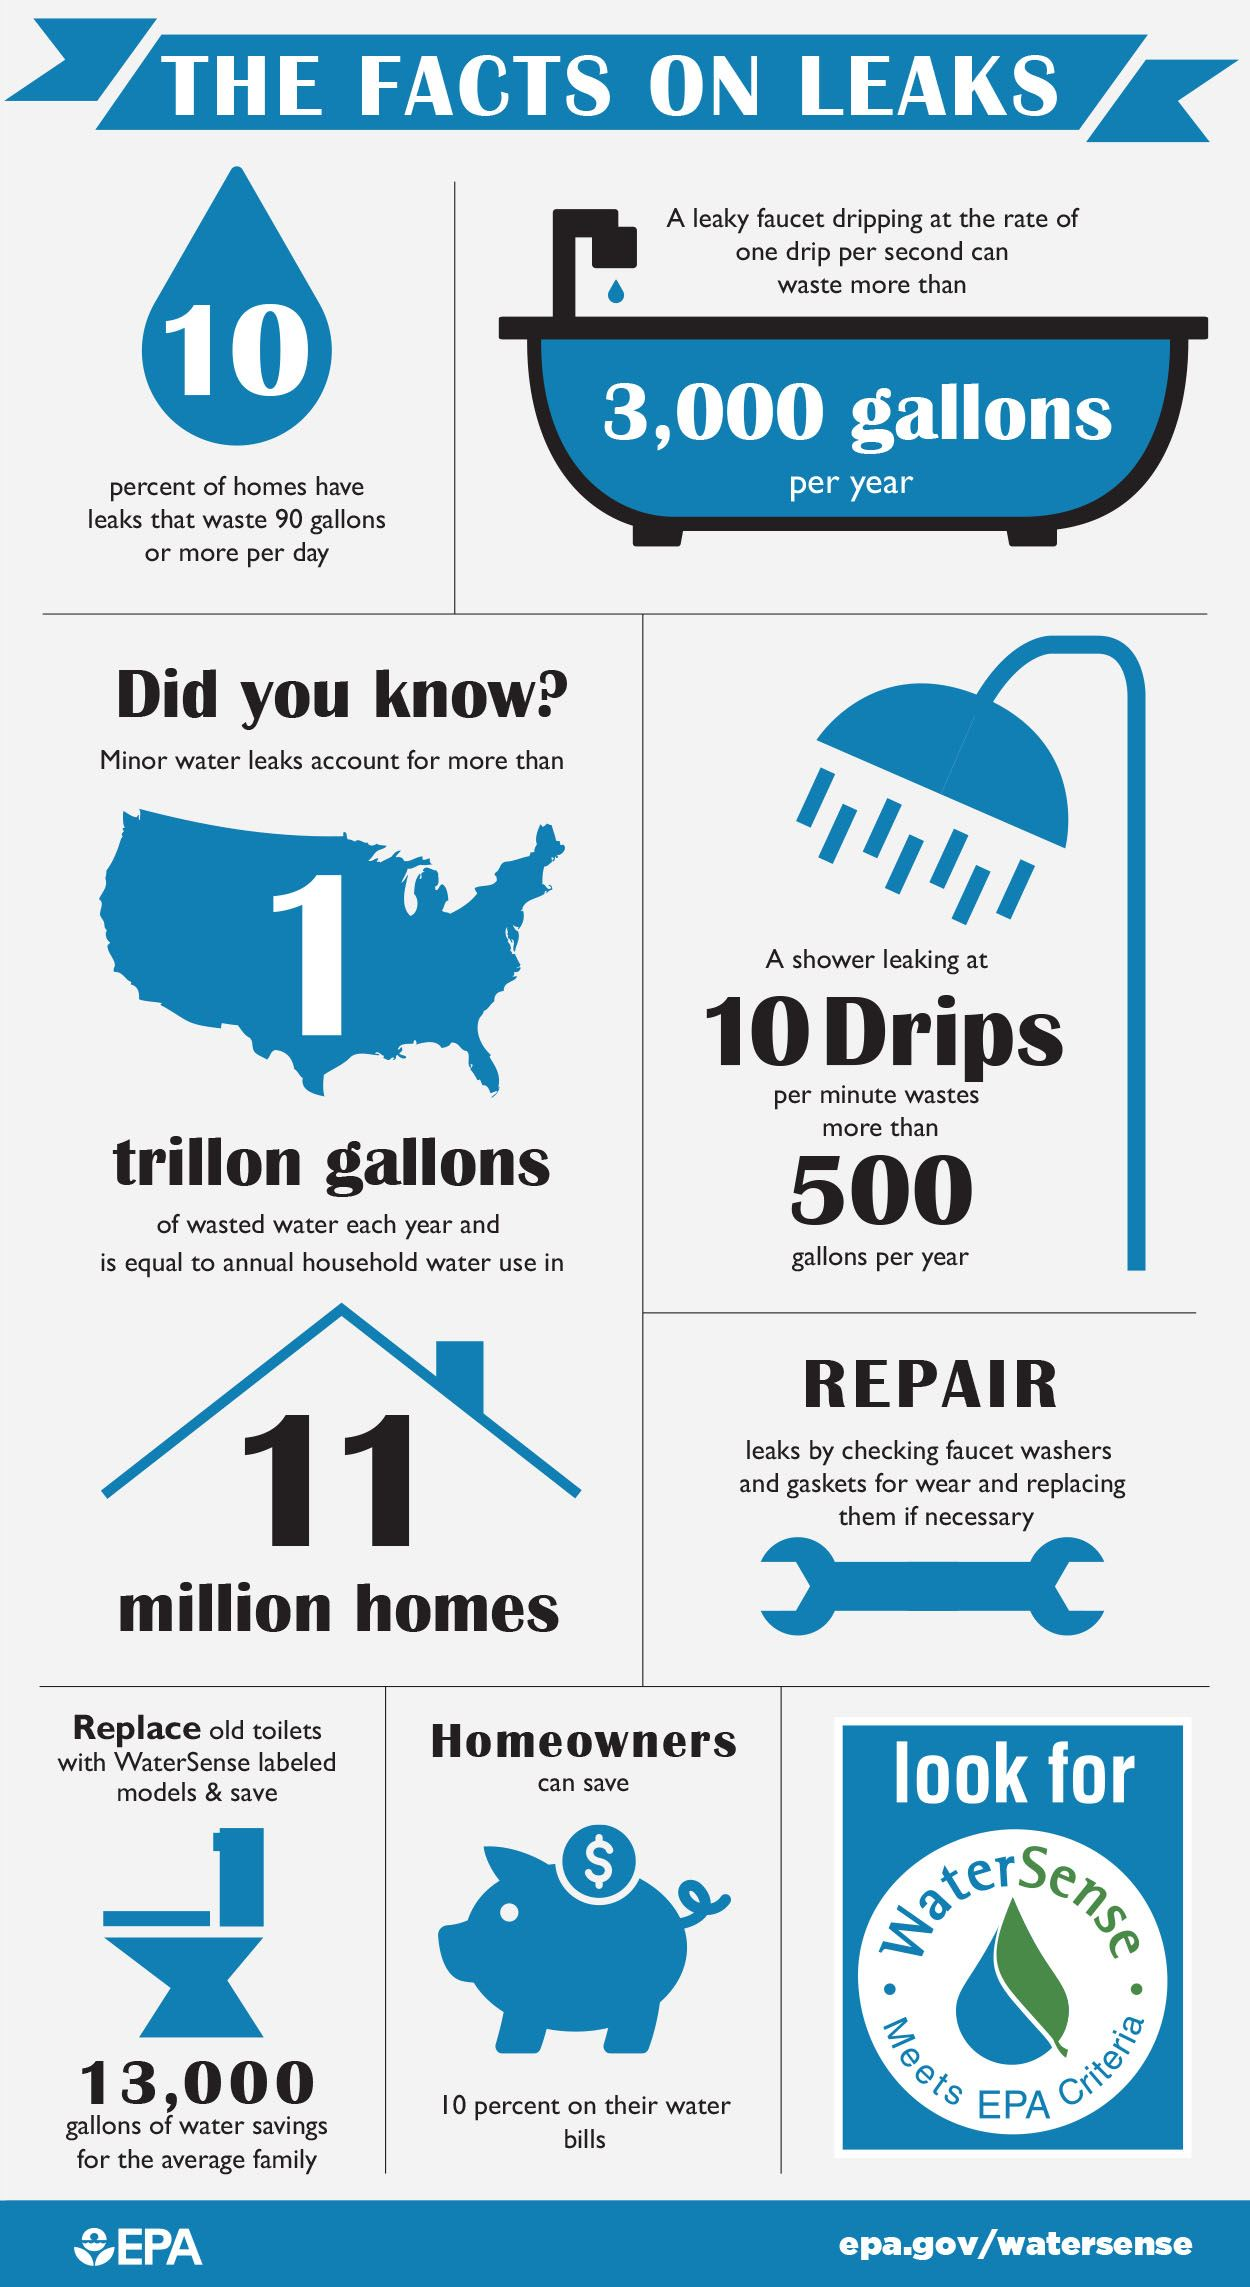 Facts on leaks infographic